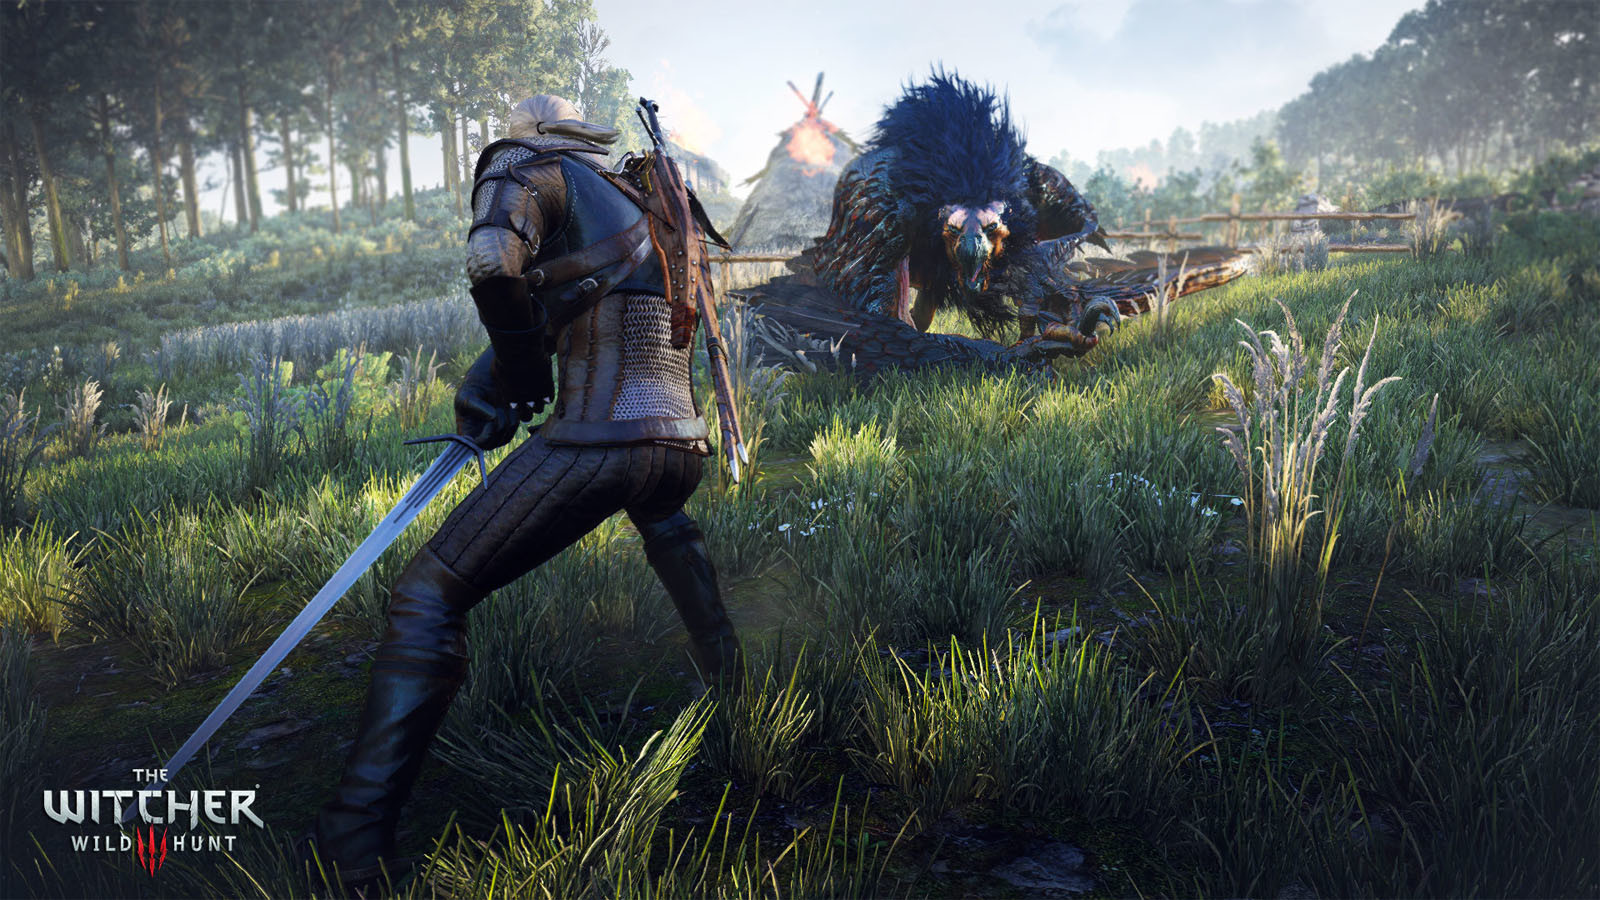 The Witcher wild hunt offline free games for PC